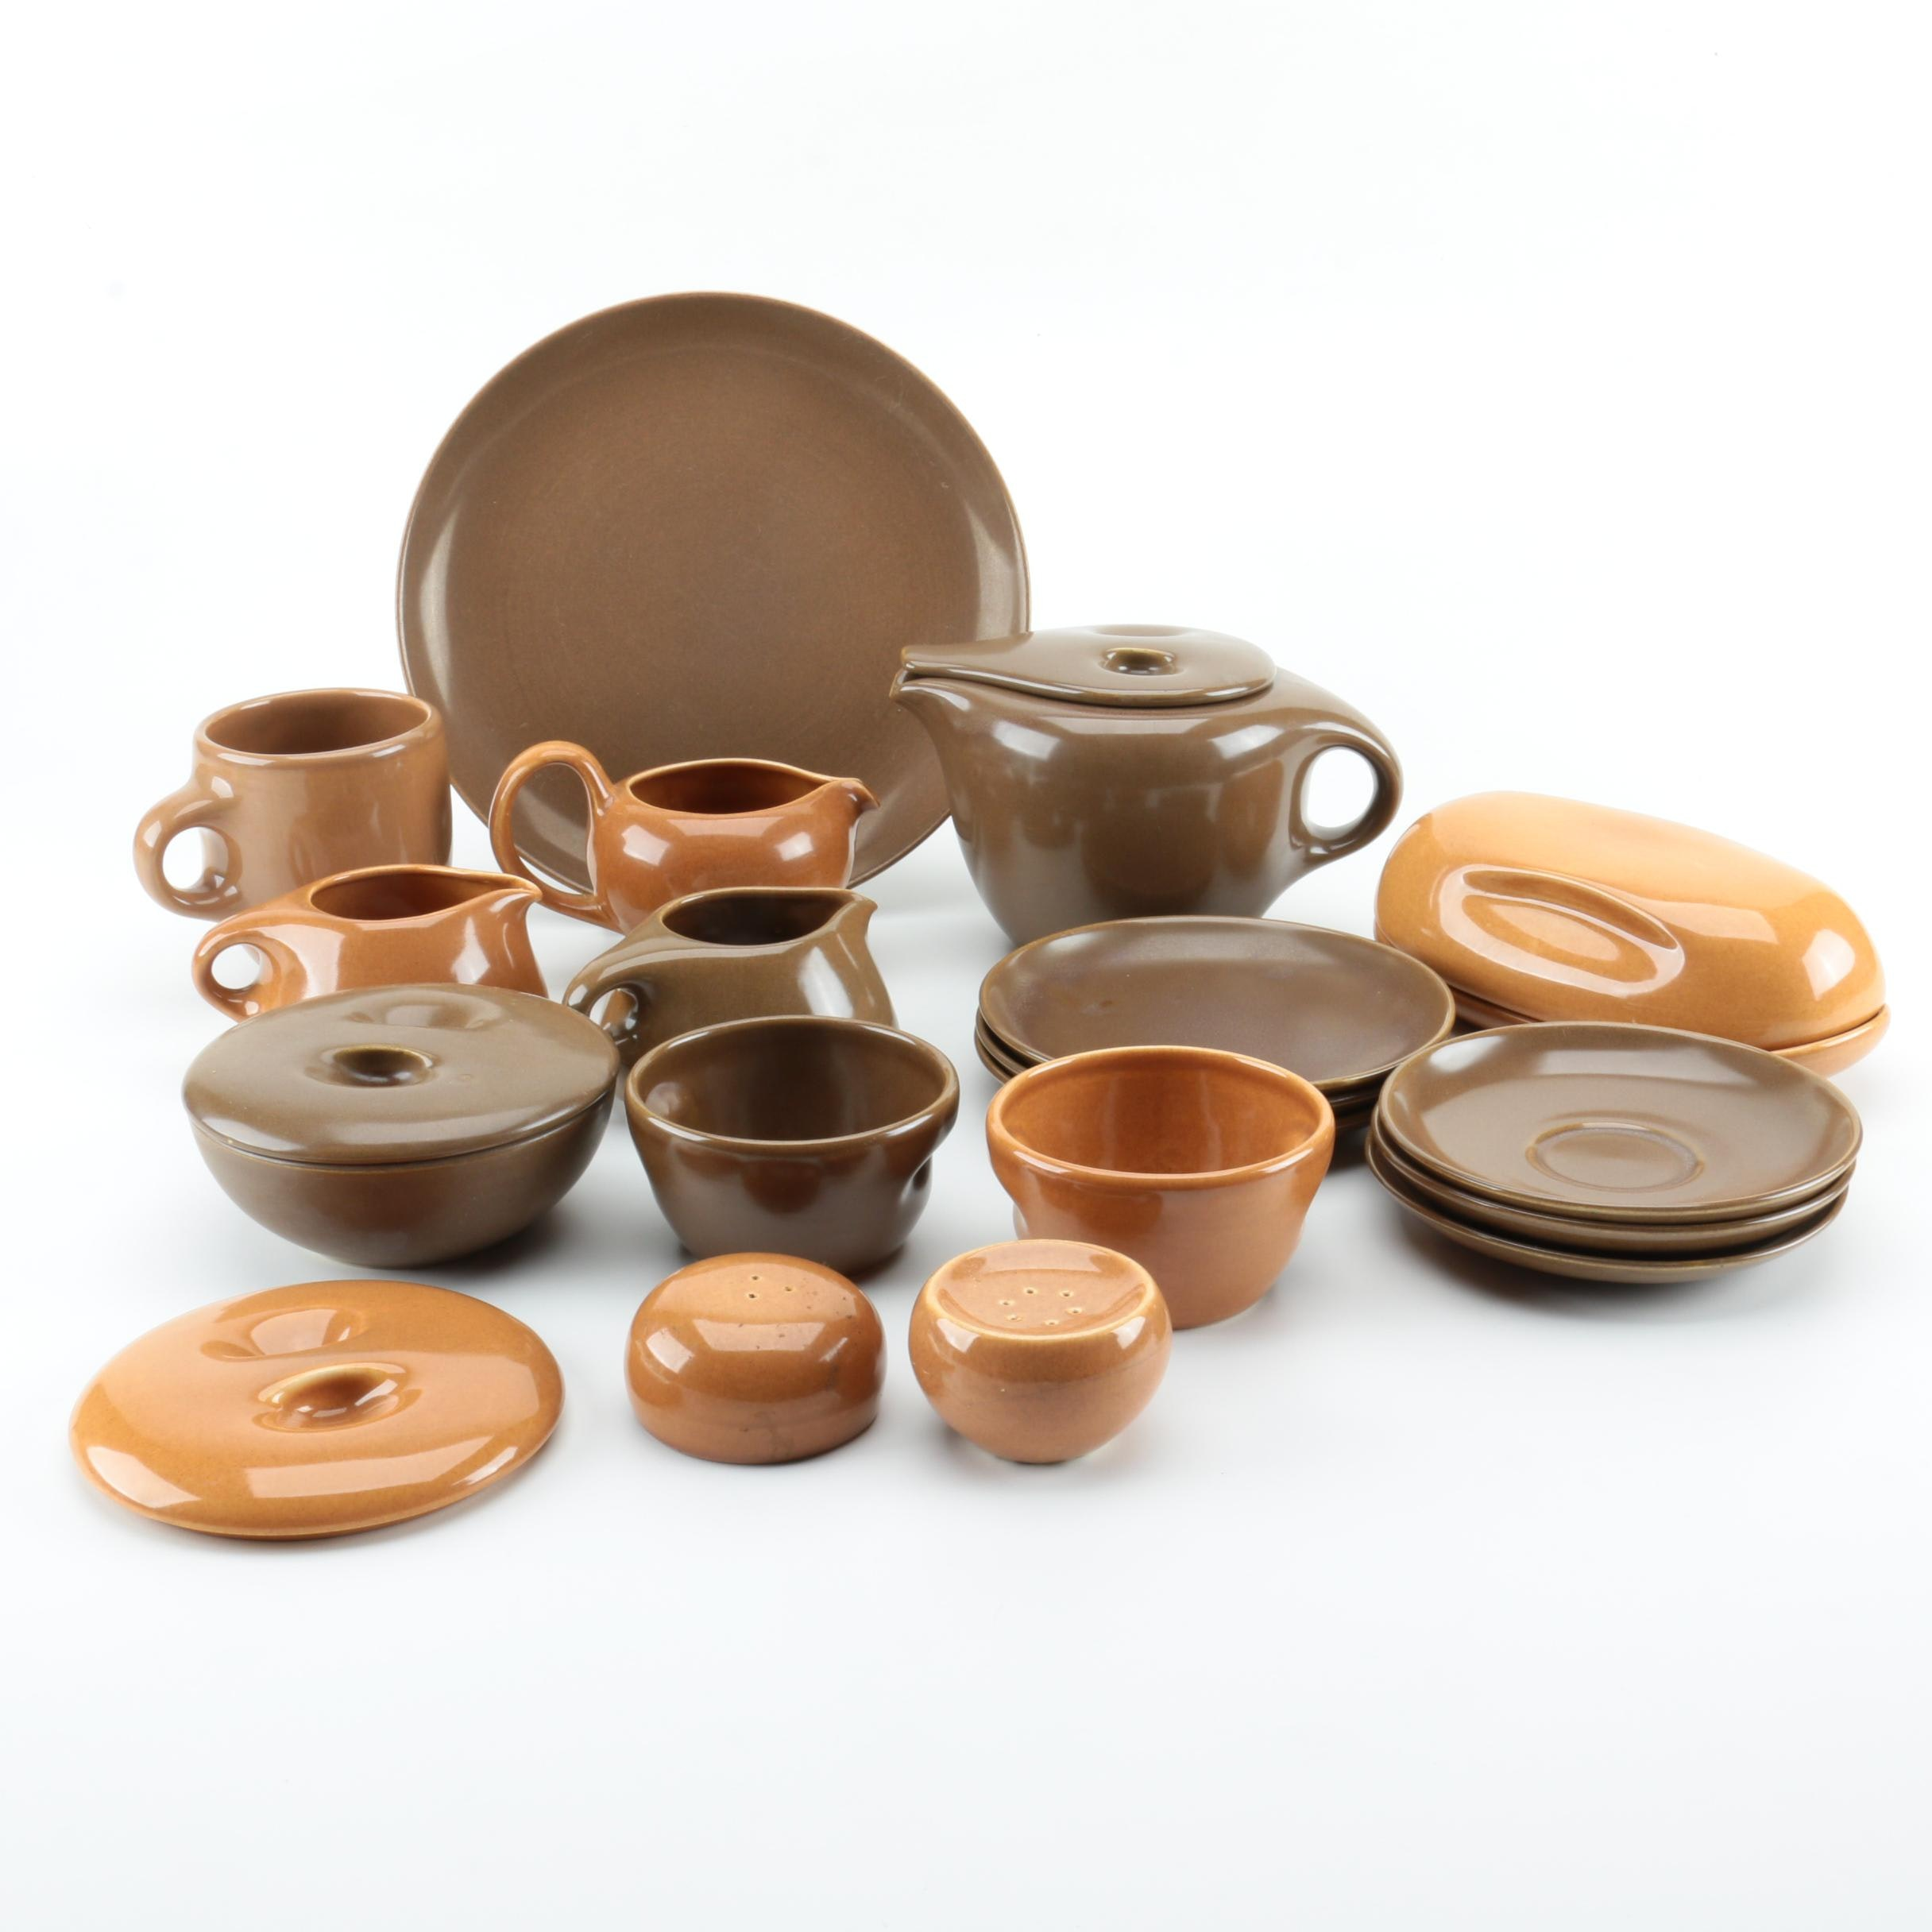 Vintage Iroquois Casual Dinnerware by Russel Wright in Brown and Apricot 1950s